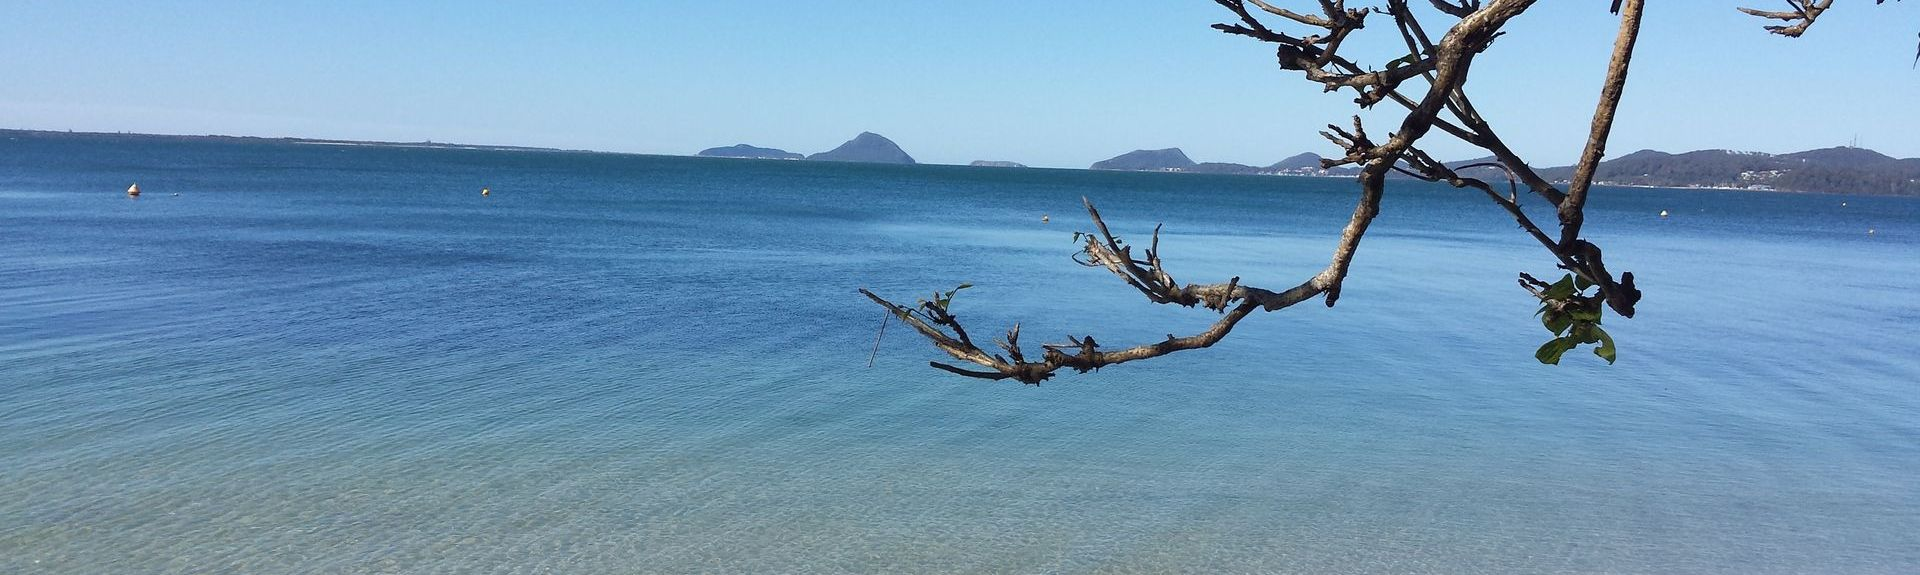 Shoal Bay, NSW holiday accommodation: Houses & more | Stayz